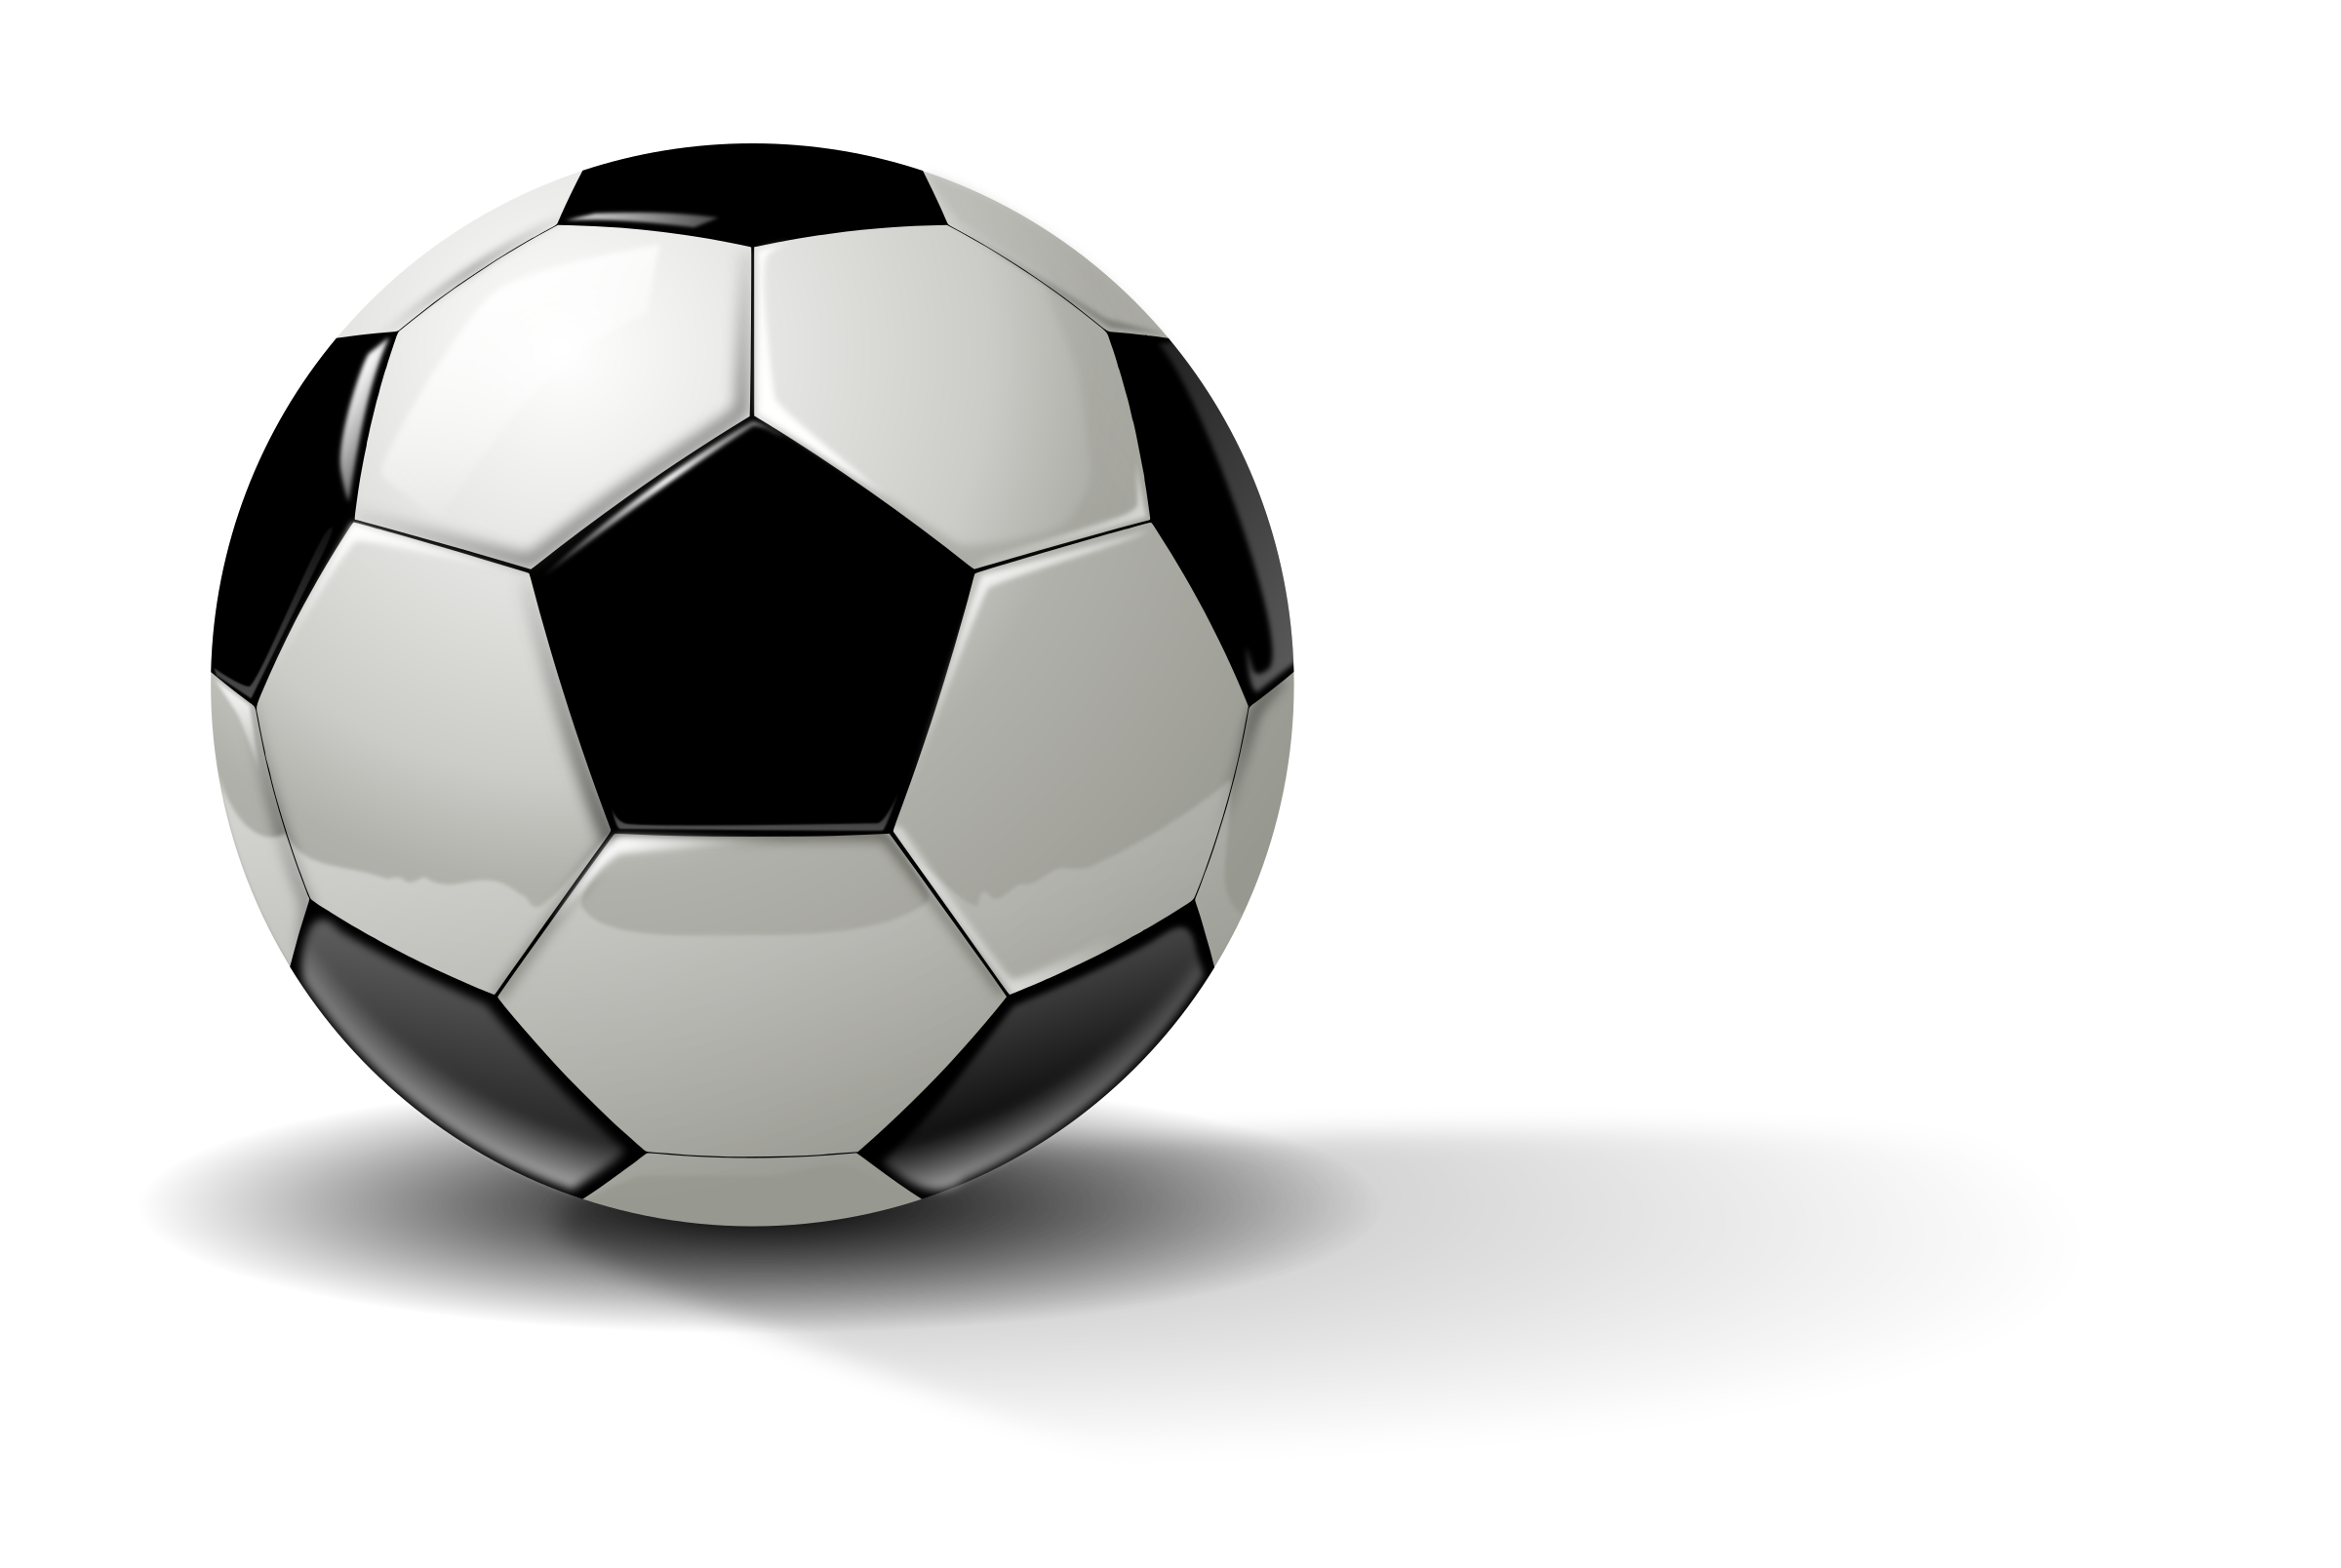 Clipart grass soccer ball. Real icons png free